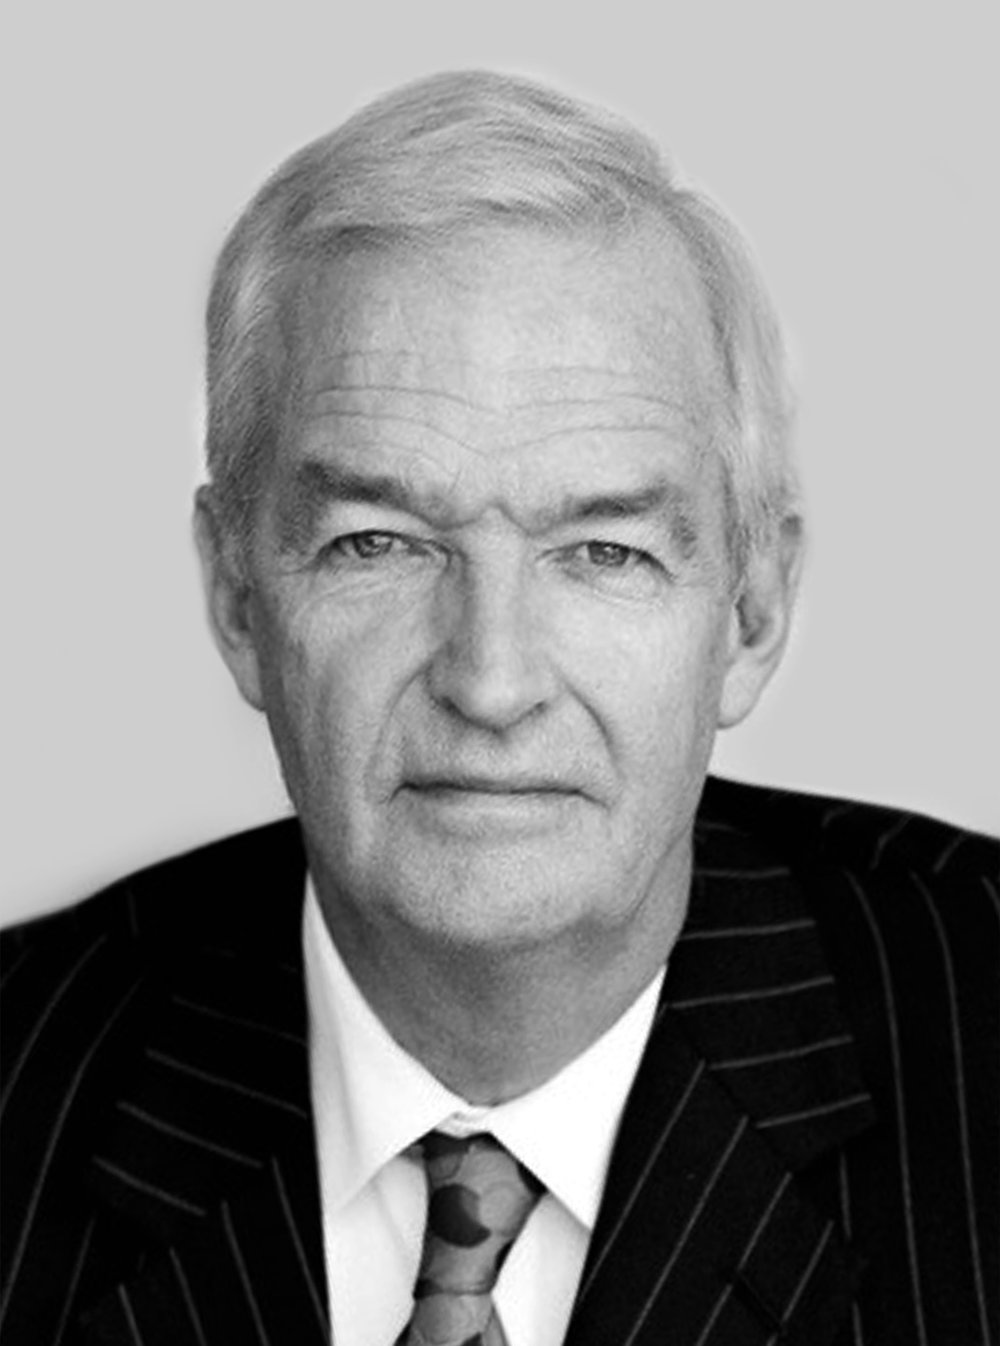 Jon Snow   Jon is a renowned journalist and Channel 4 anchor. He has covered some of the biggest news stories over the last thirty years, providing insightful and emotive journalism on a huge range of issues.